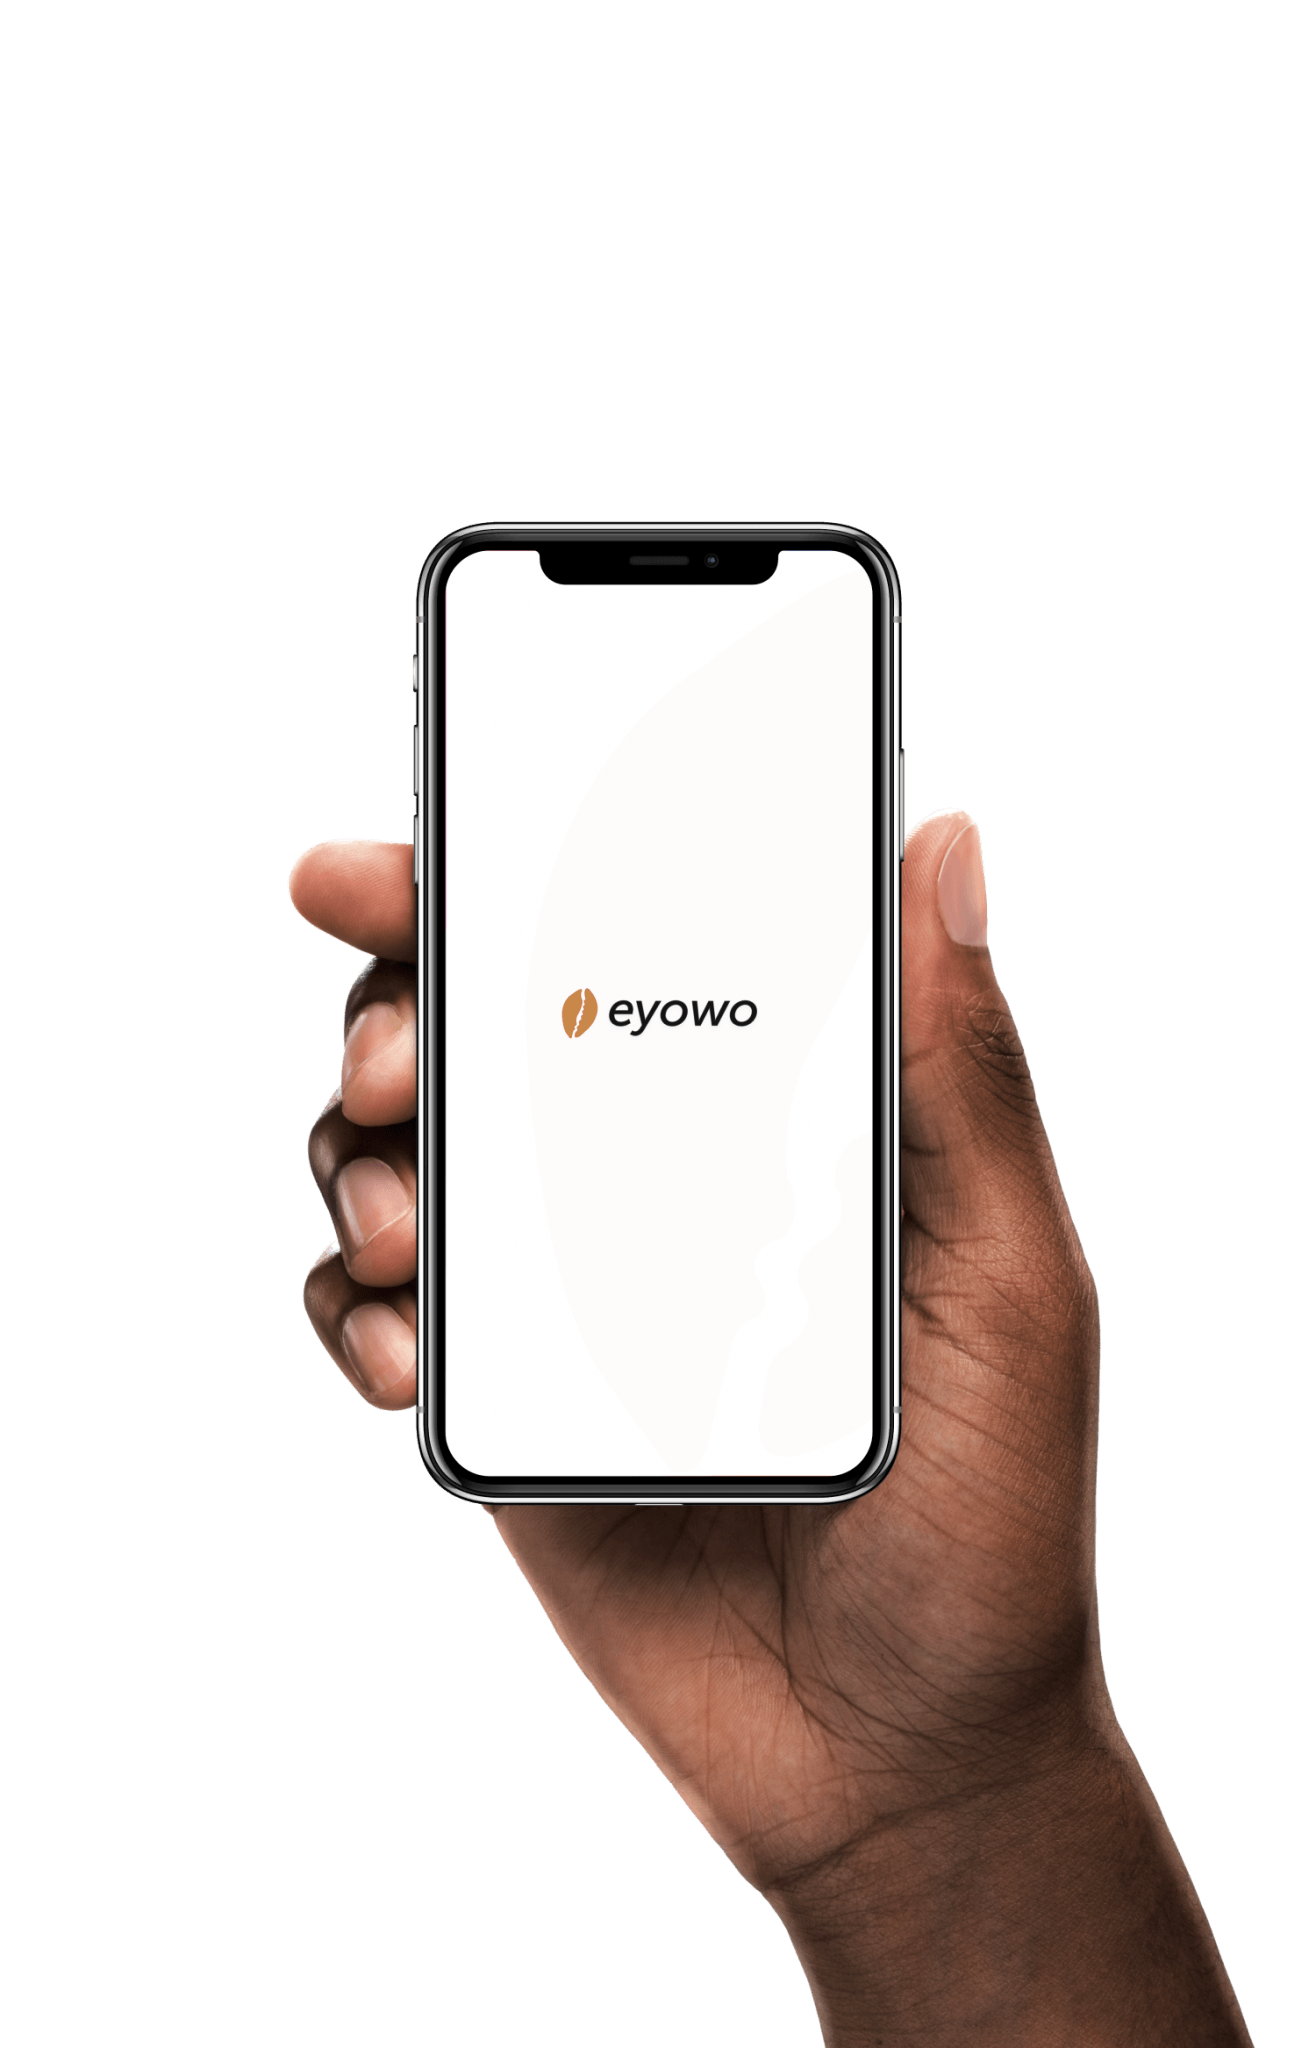 Eyowo, the answer to payment issues in Nigeria? Female